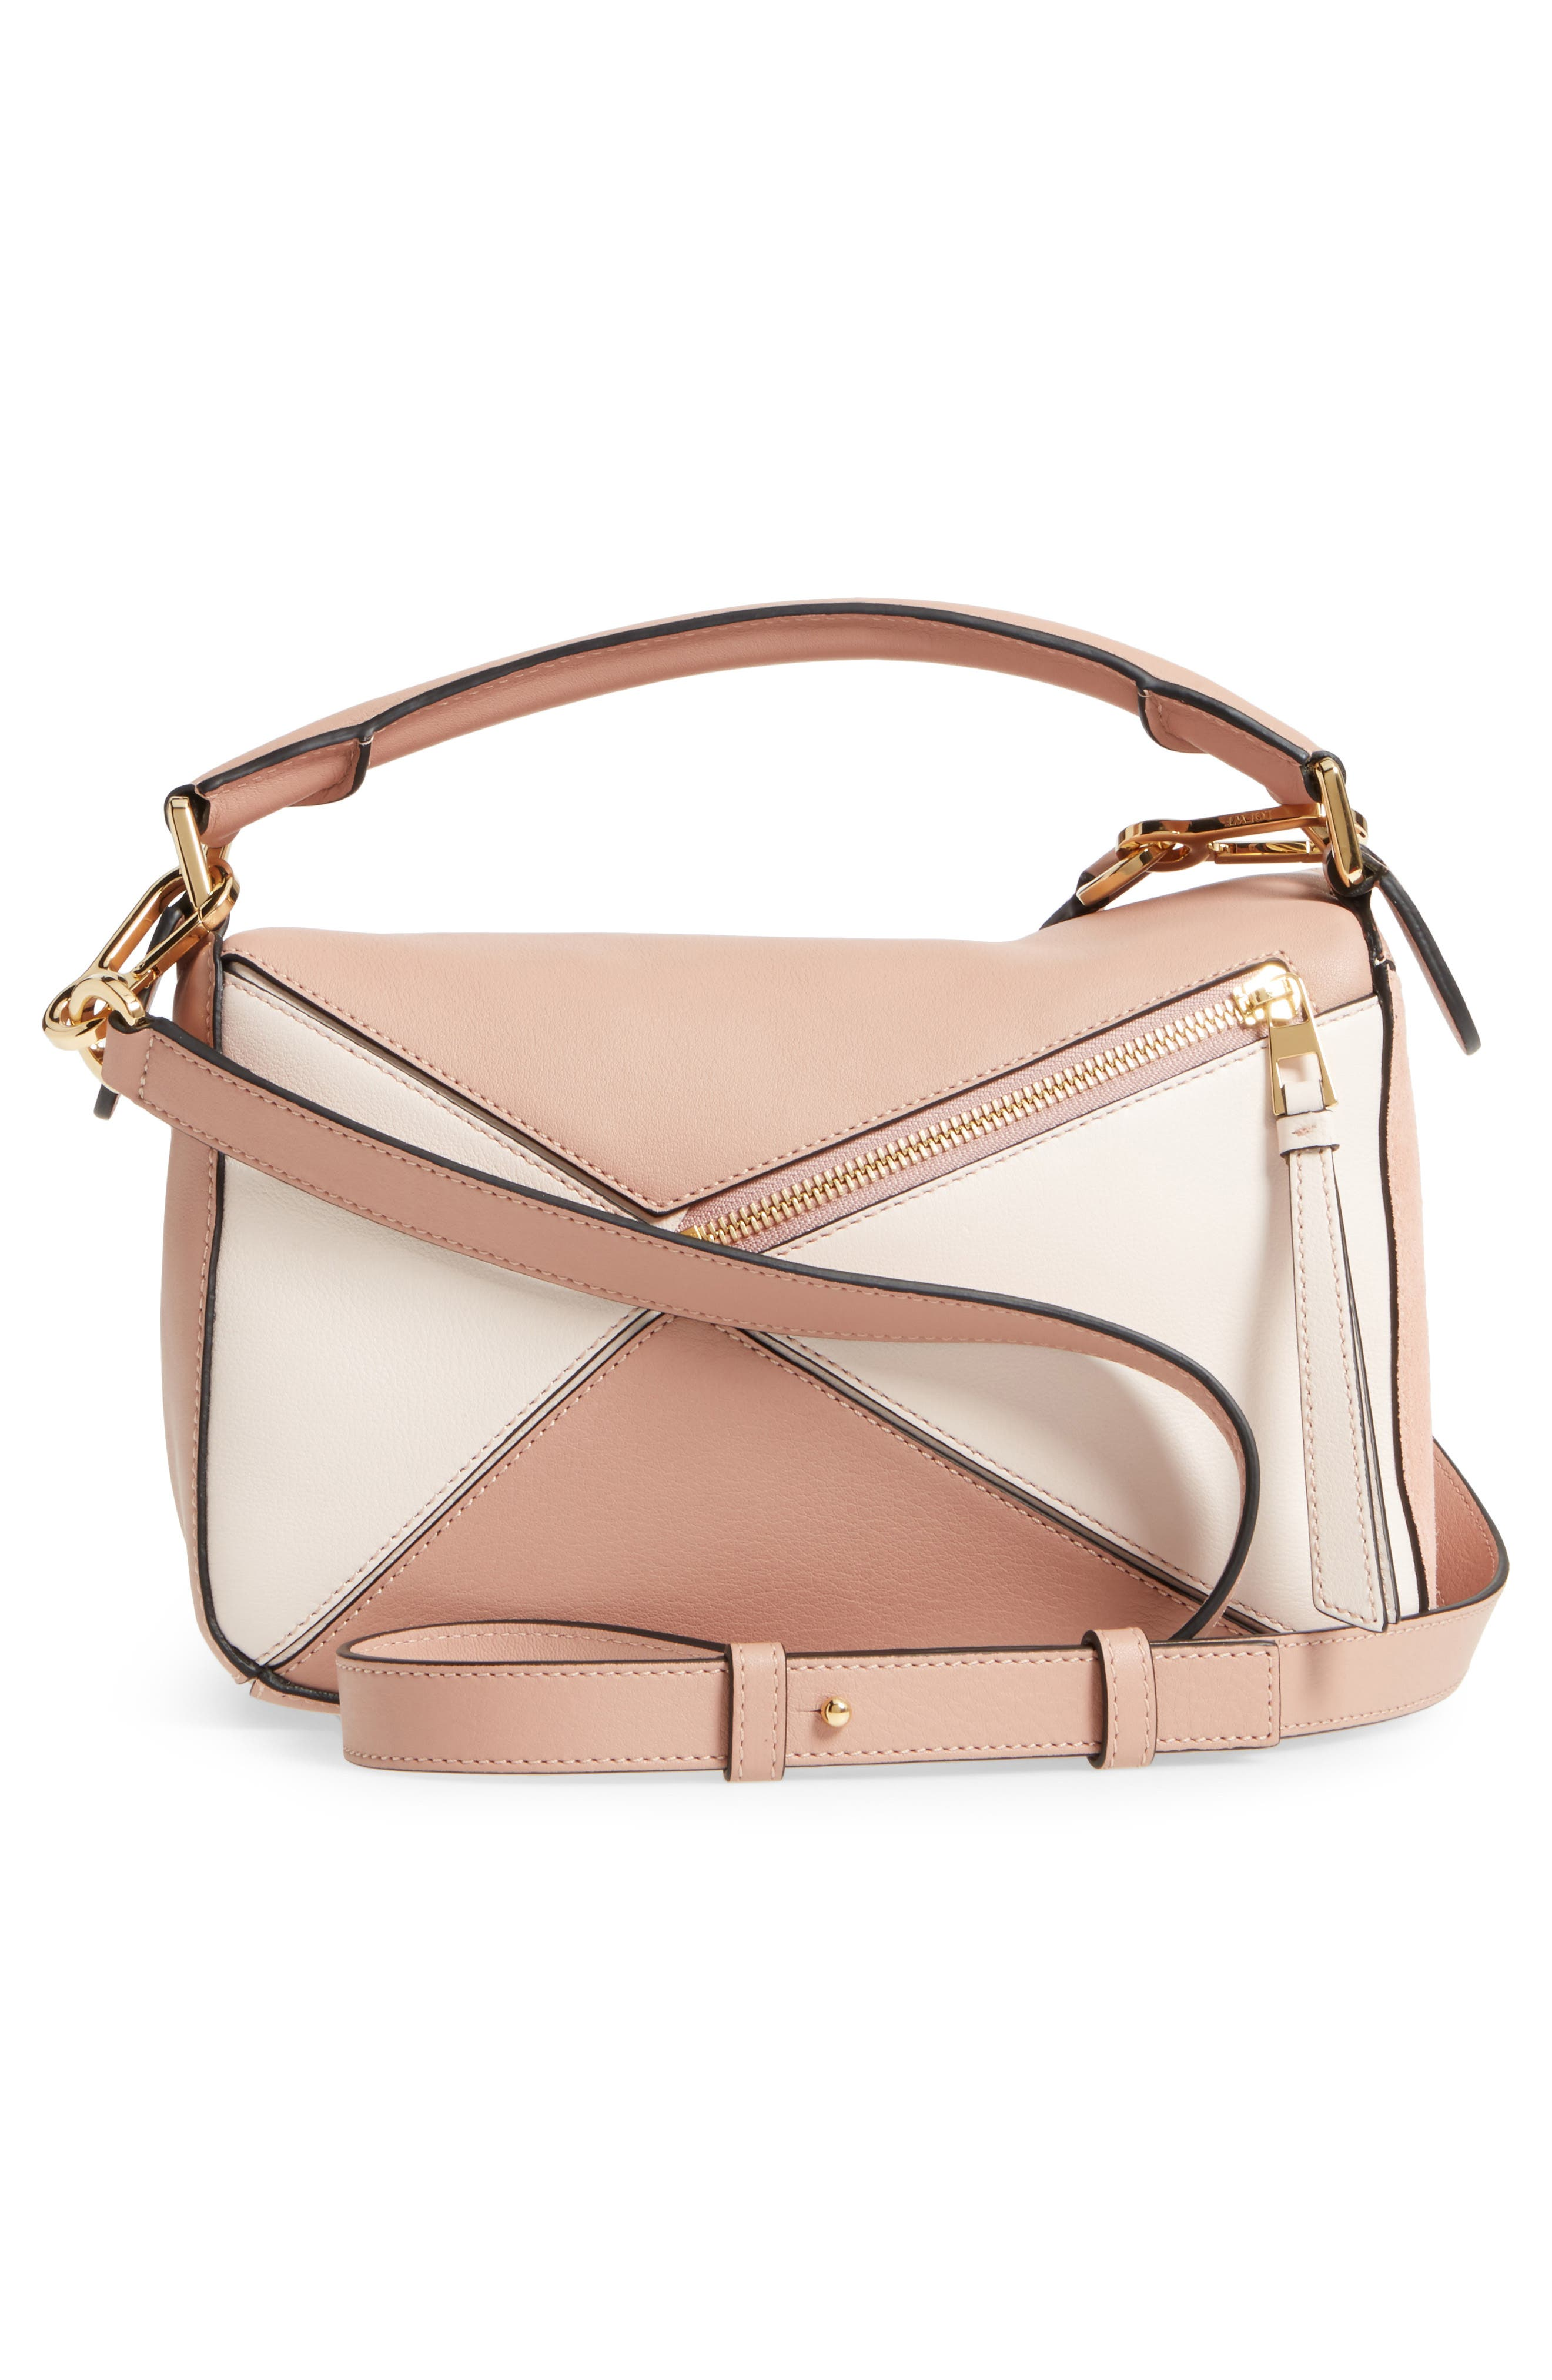 Small Puzzle Bicolor Leather Bag,                             Alternate thumbnail 3, color,                             BLUSH MULTITONE